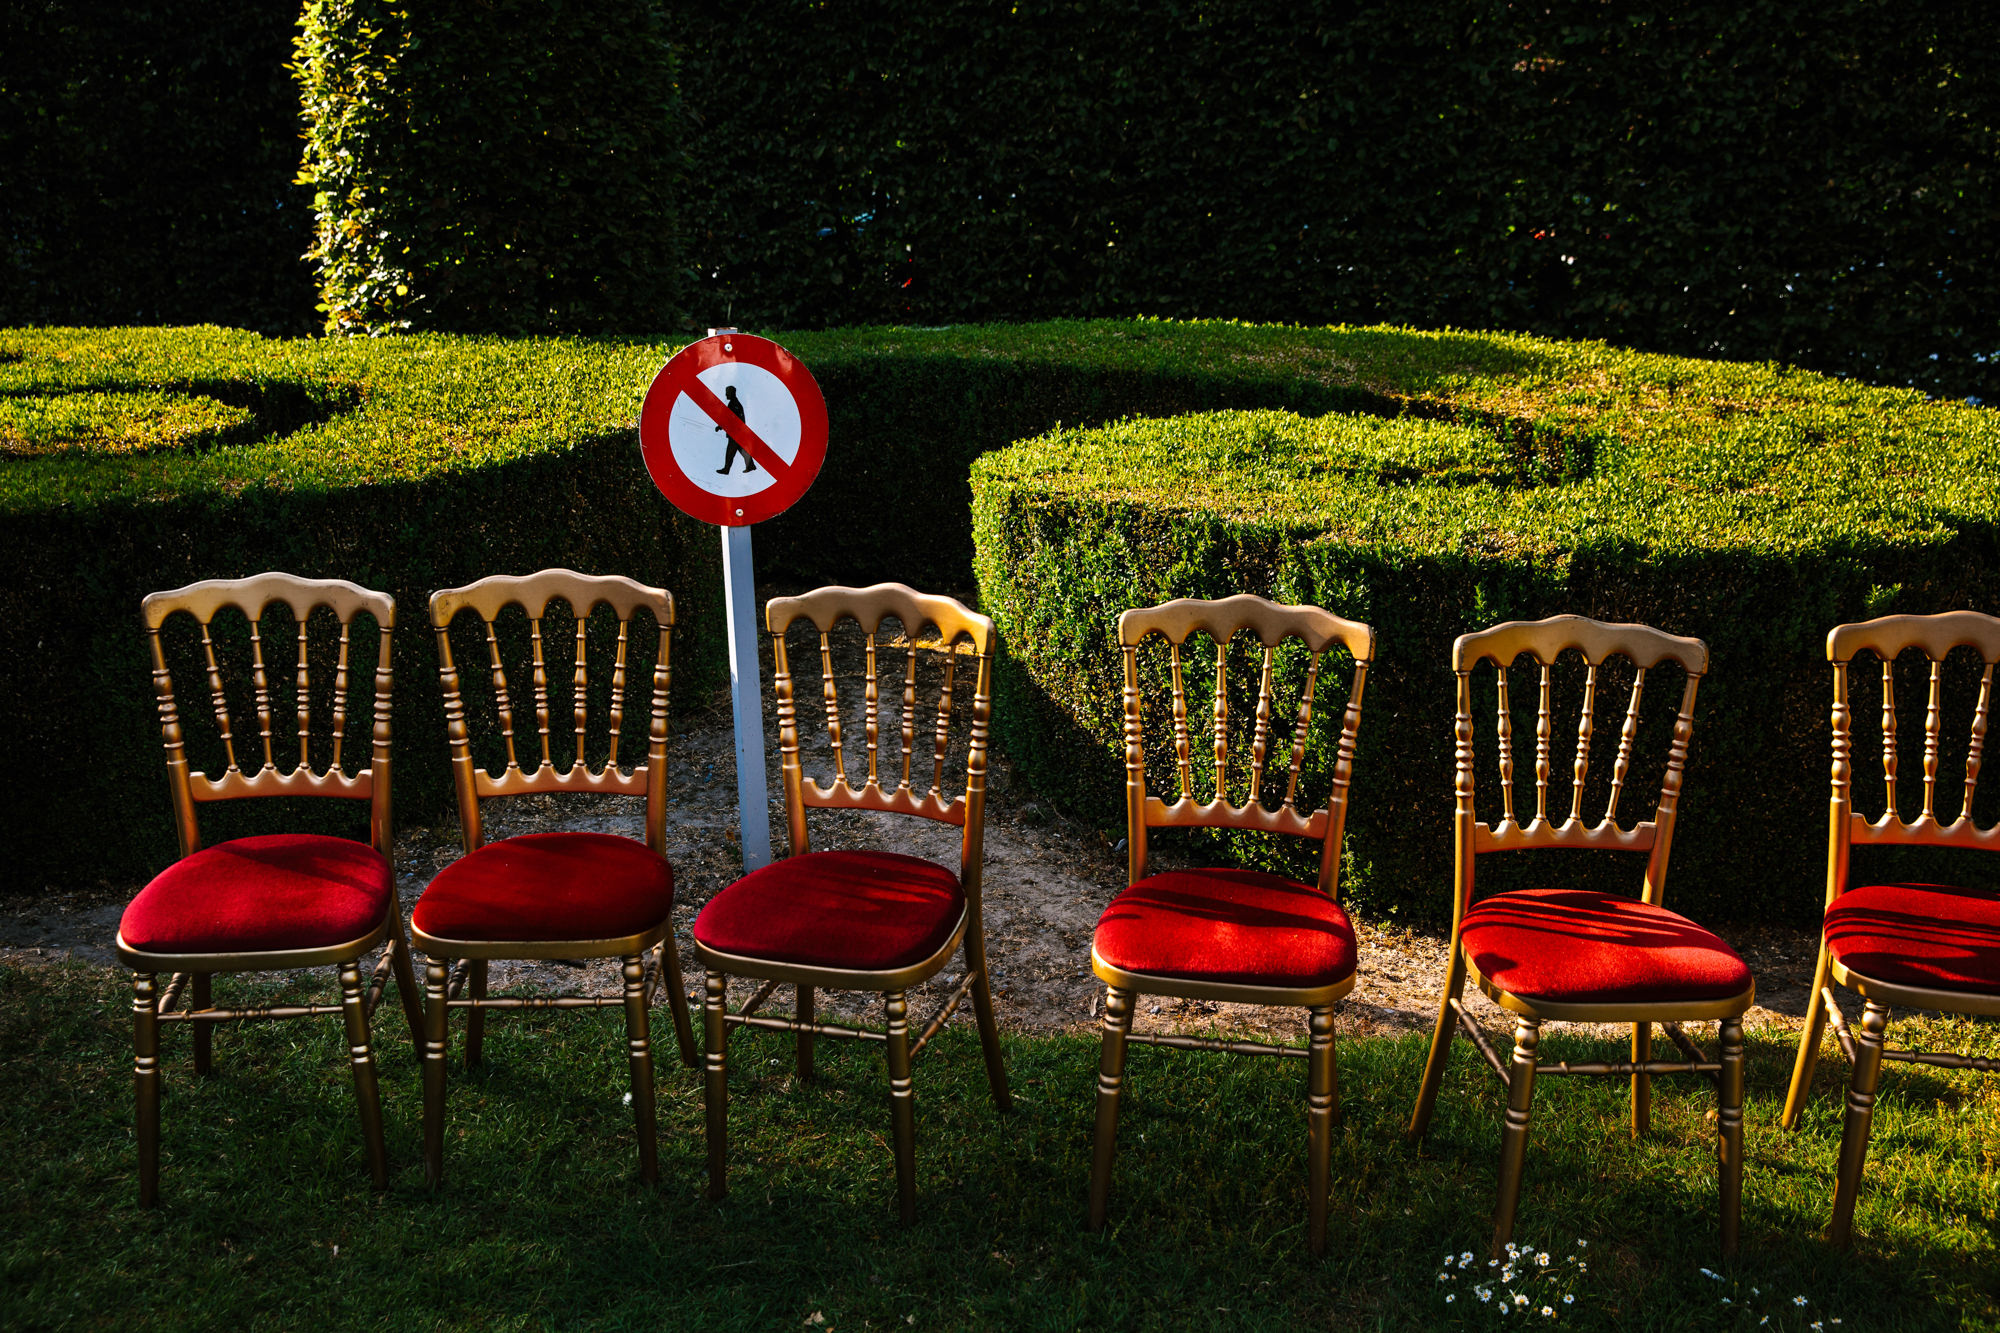 Gold ornate chiavari chairs with red covers Yves Schepers Belgium wedding photographers